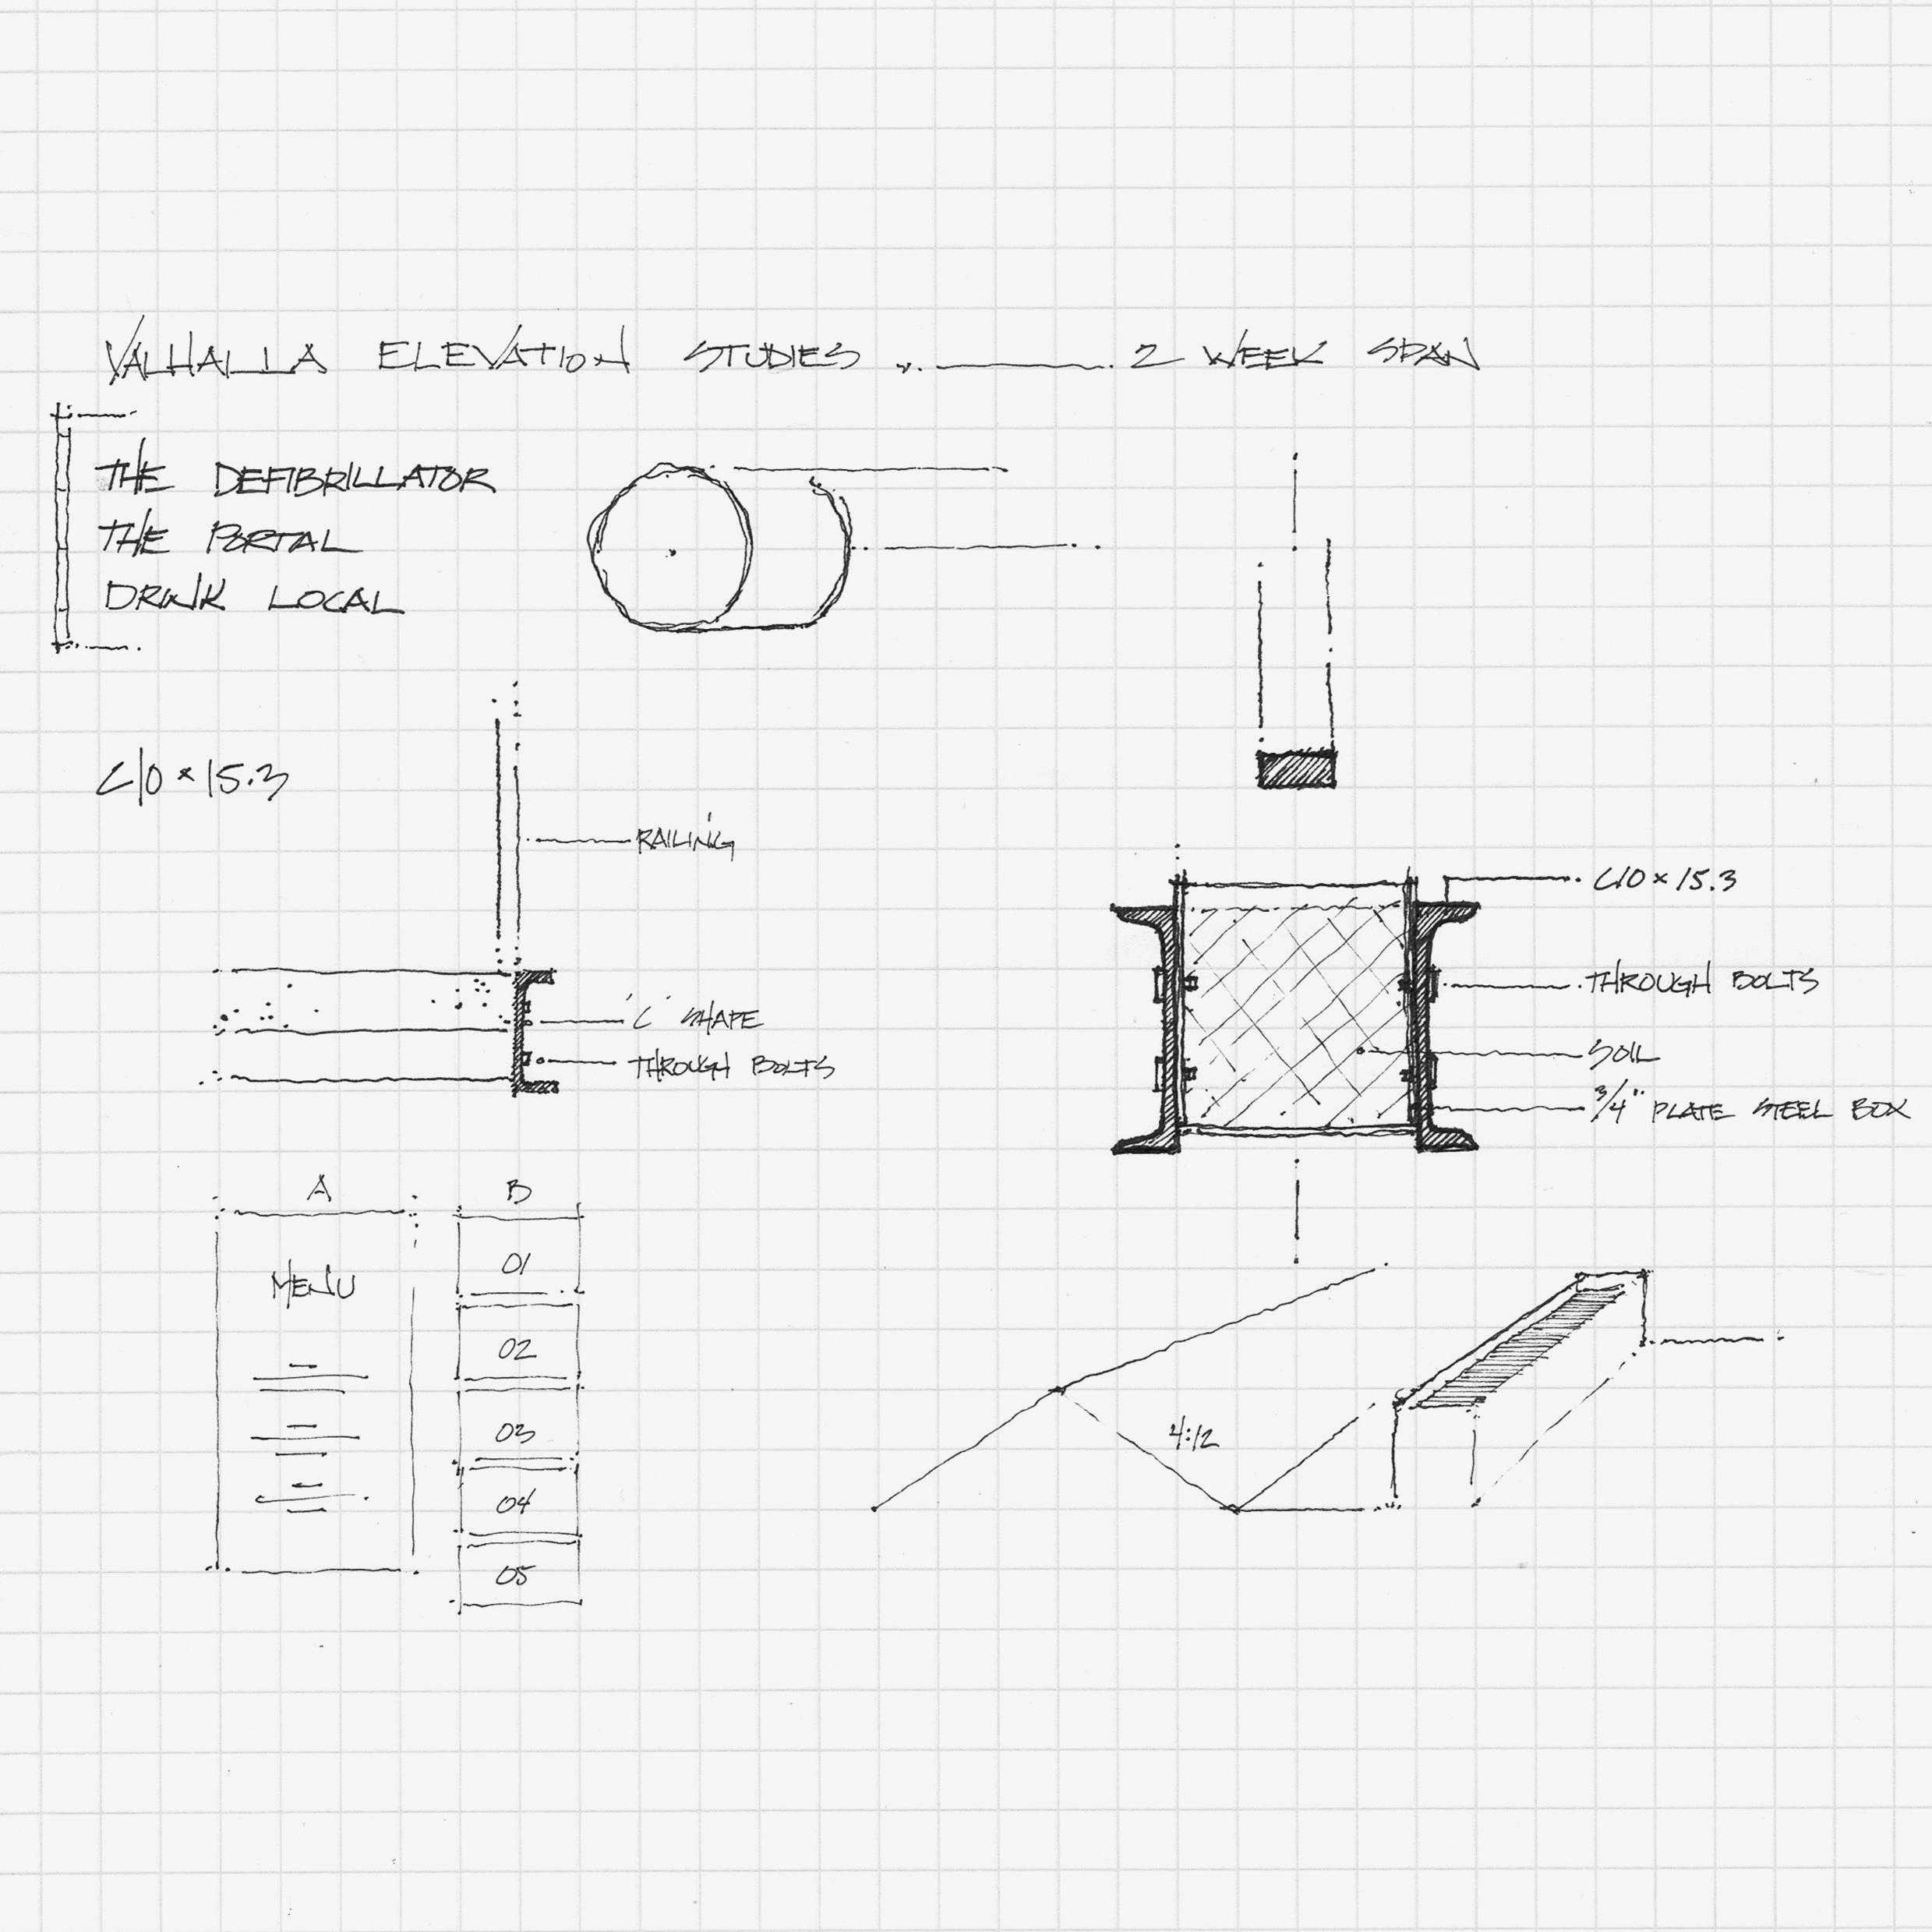 Concepts sketches of planter details